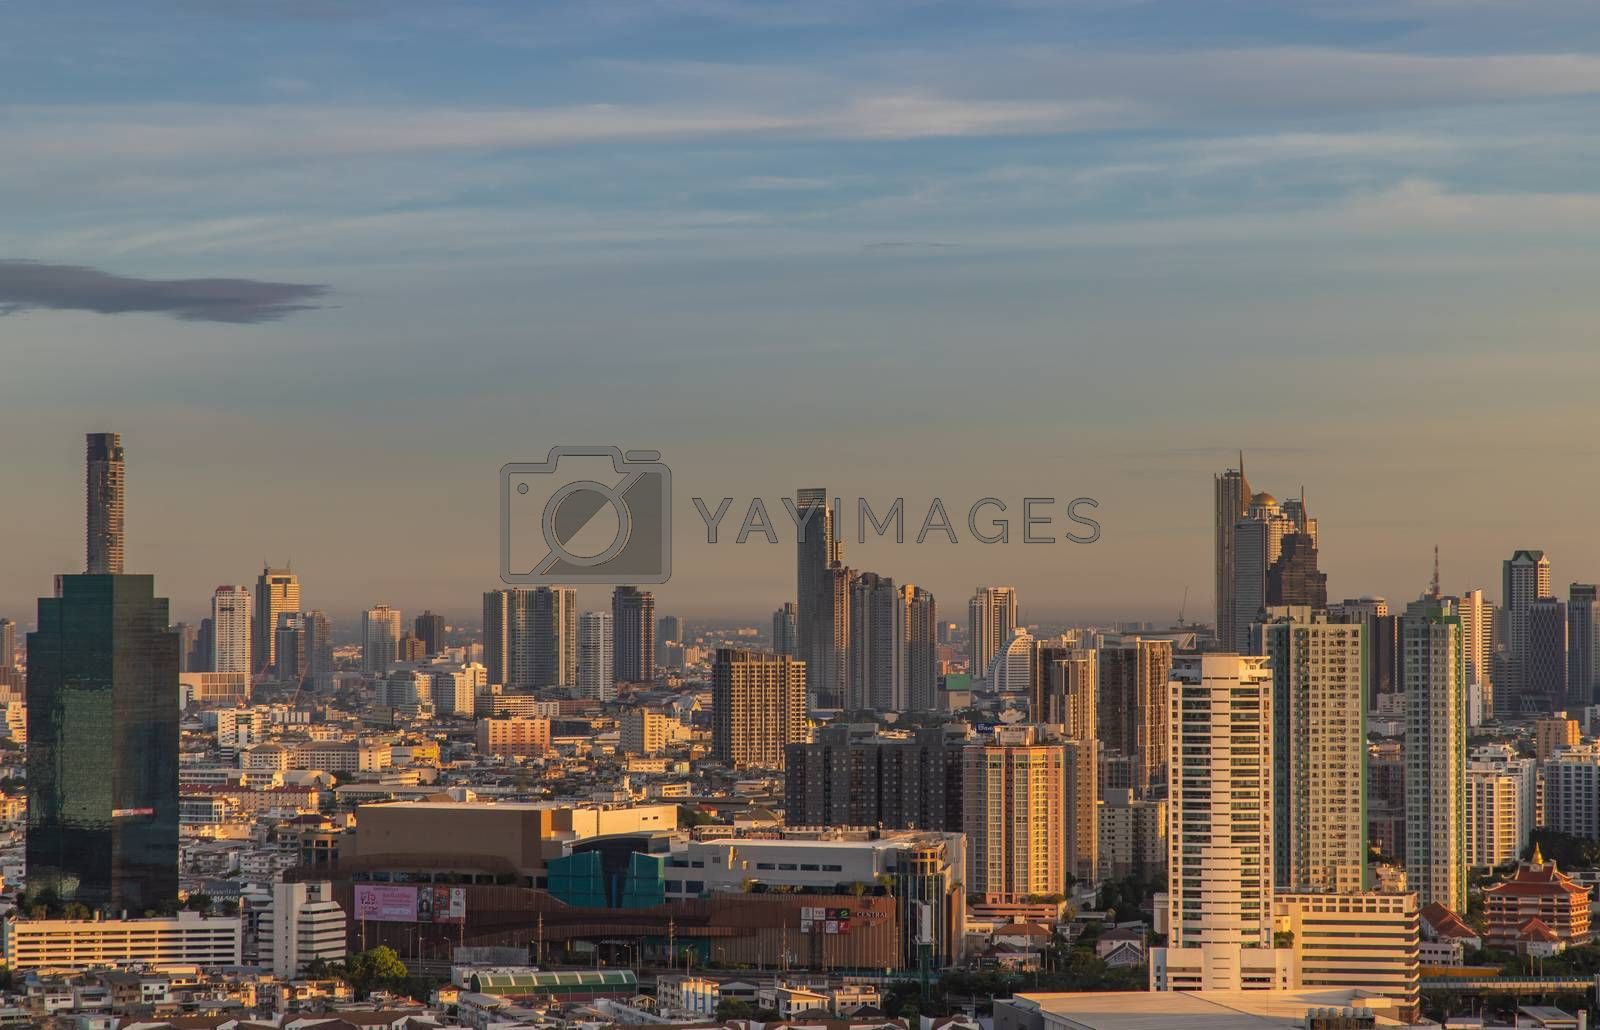 Bangkok, Thailand - Jun 28, 2020 : City view of Bangkok before the sun rises creates energetic feeling to get ready for the day waiting ahead. Selective focus.